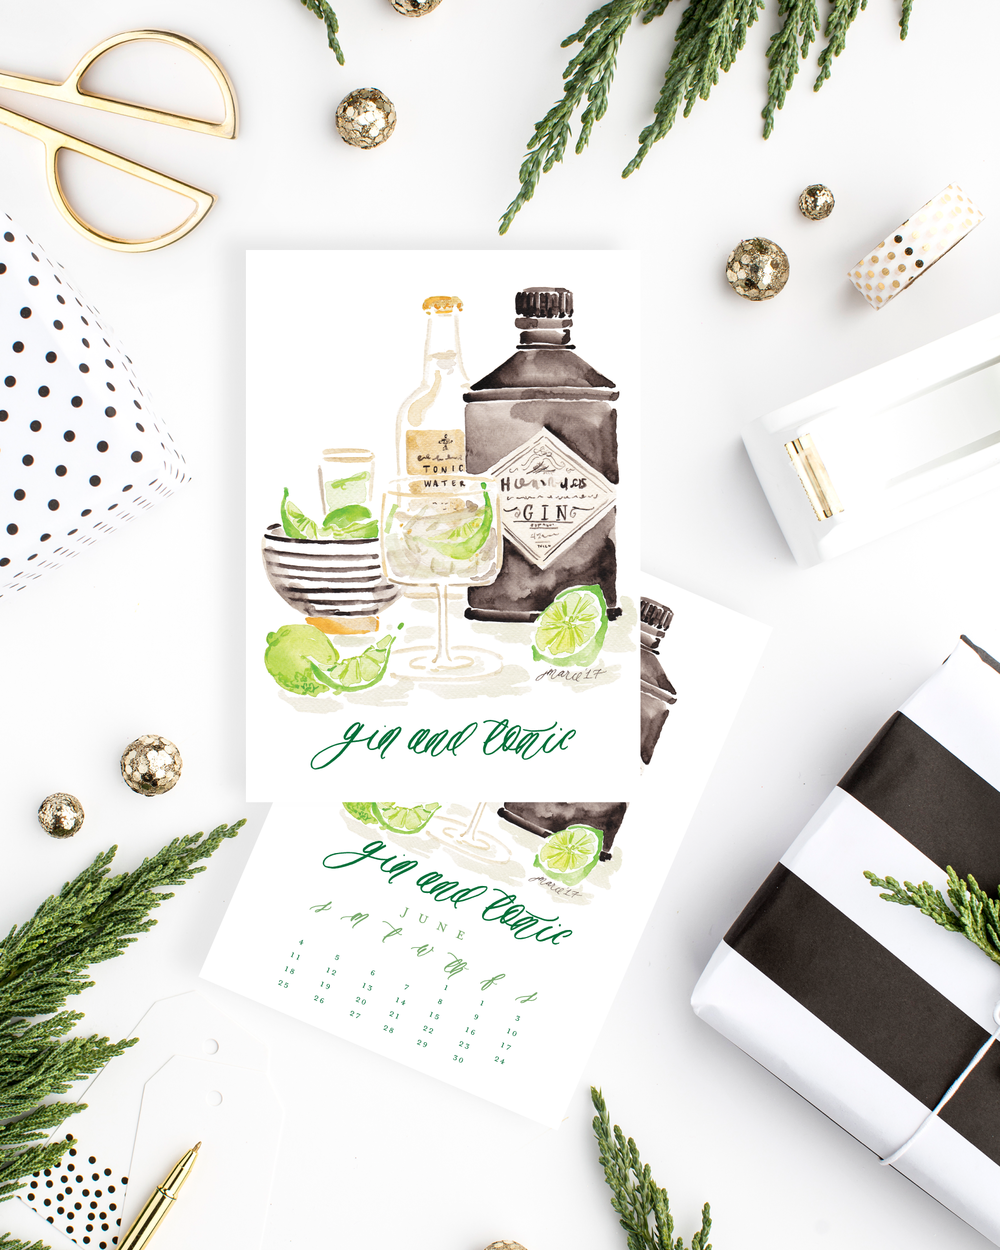 2017 Cocktail Calendar with Watercolor Cocktail Illustrations by Simply Jessica Marie | SC Stockshop